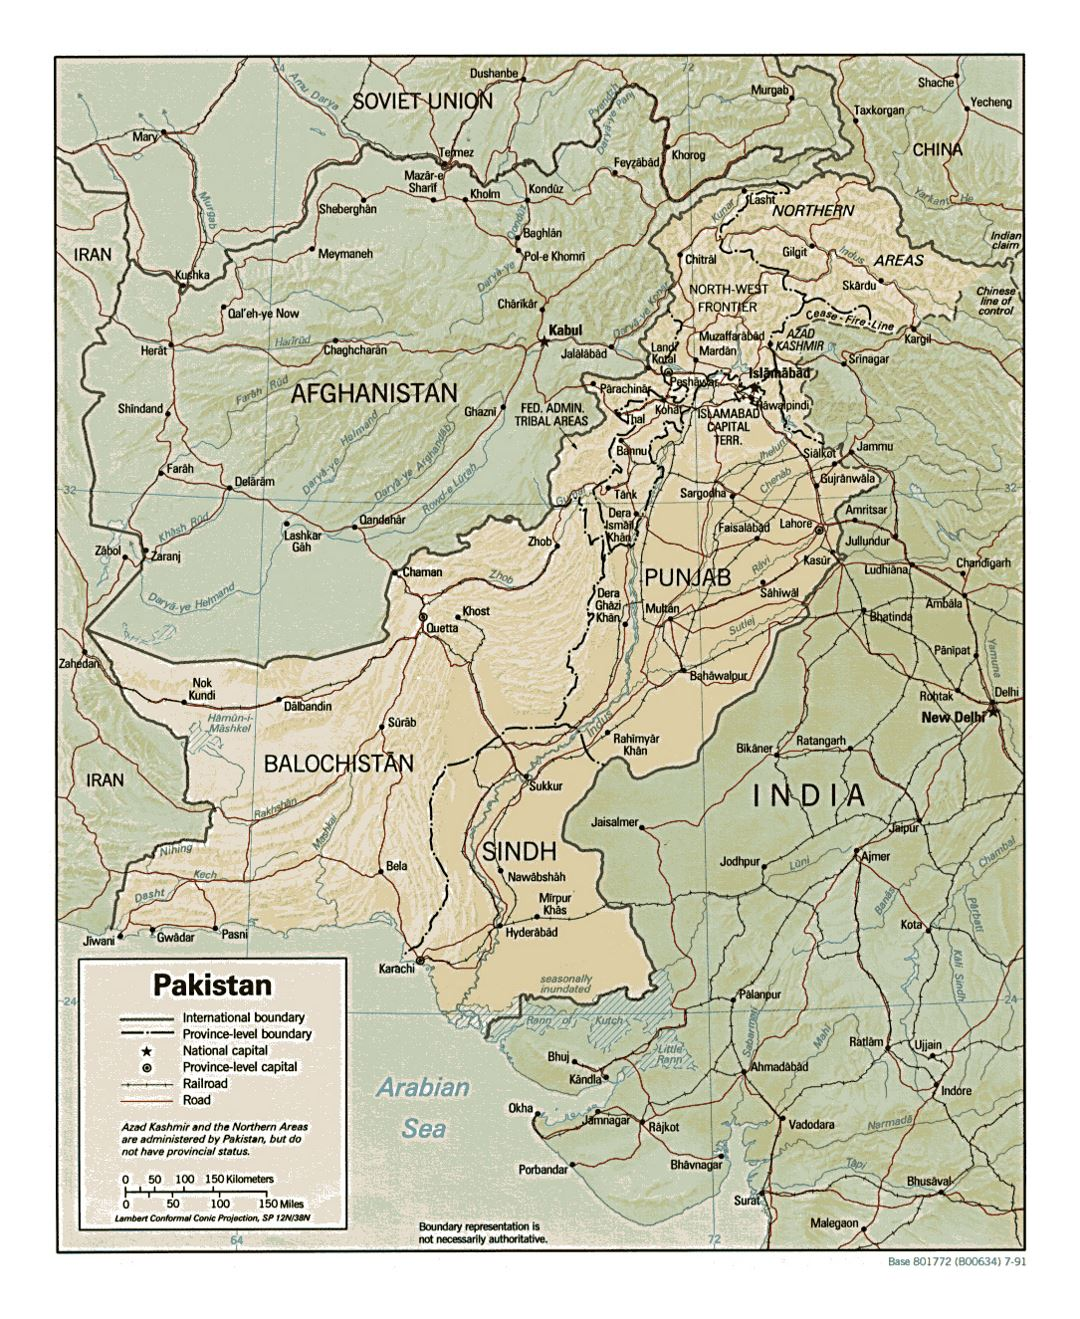 Detailed political and administrative map of Pakistan with relief, roads, railroads and major cities - 1991